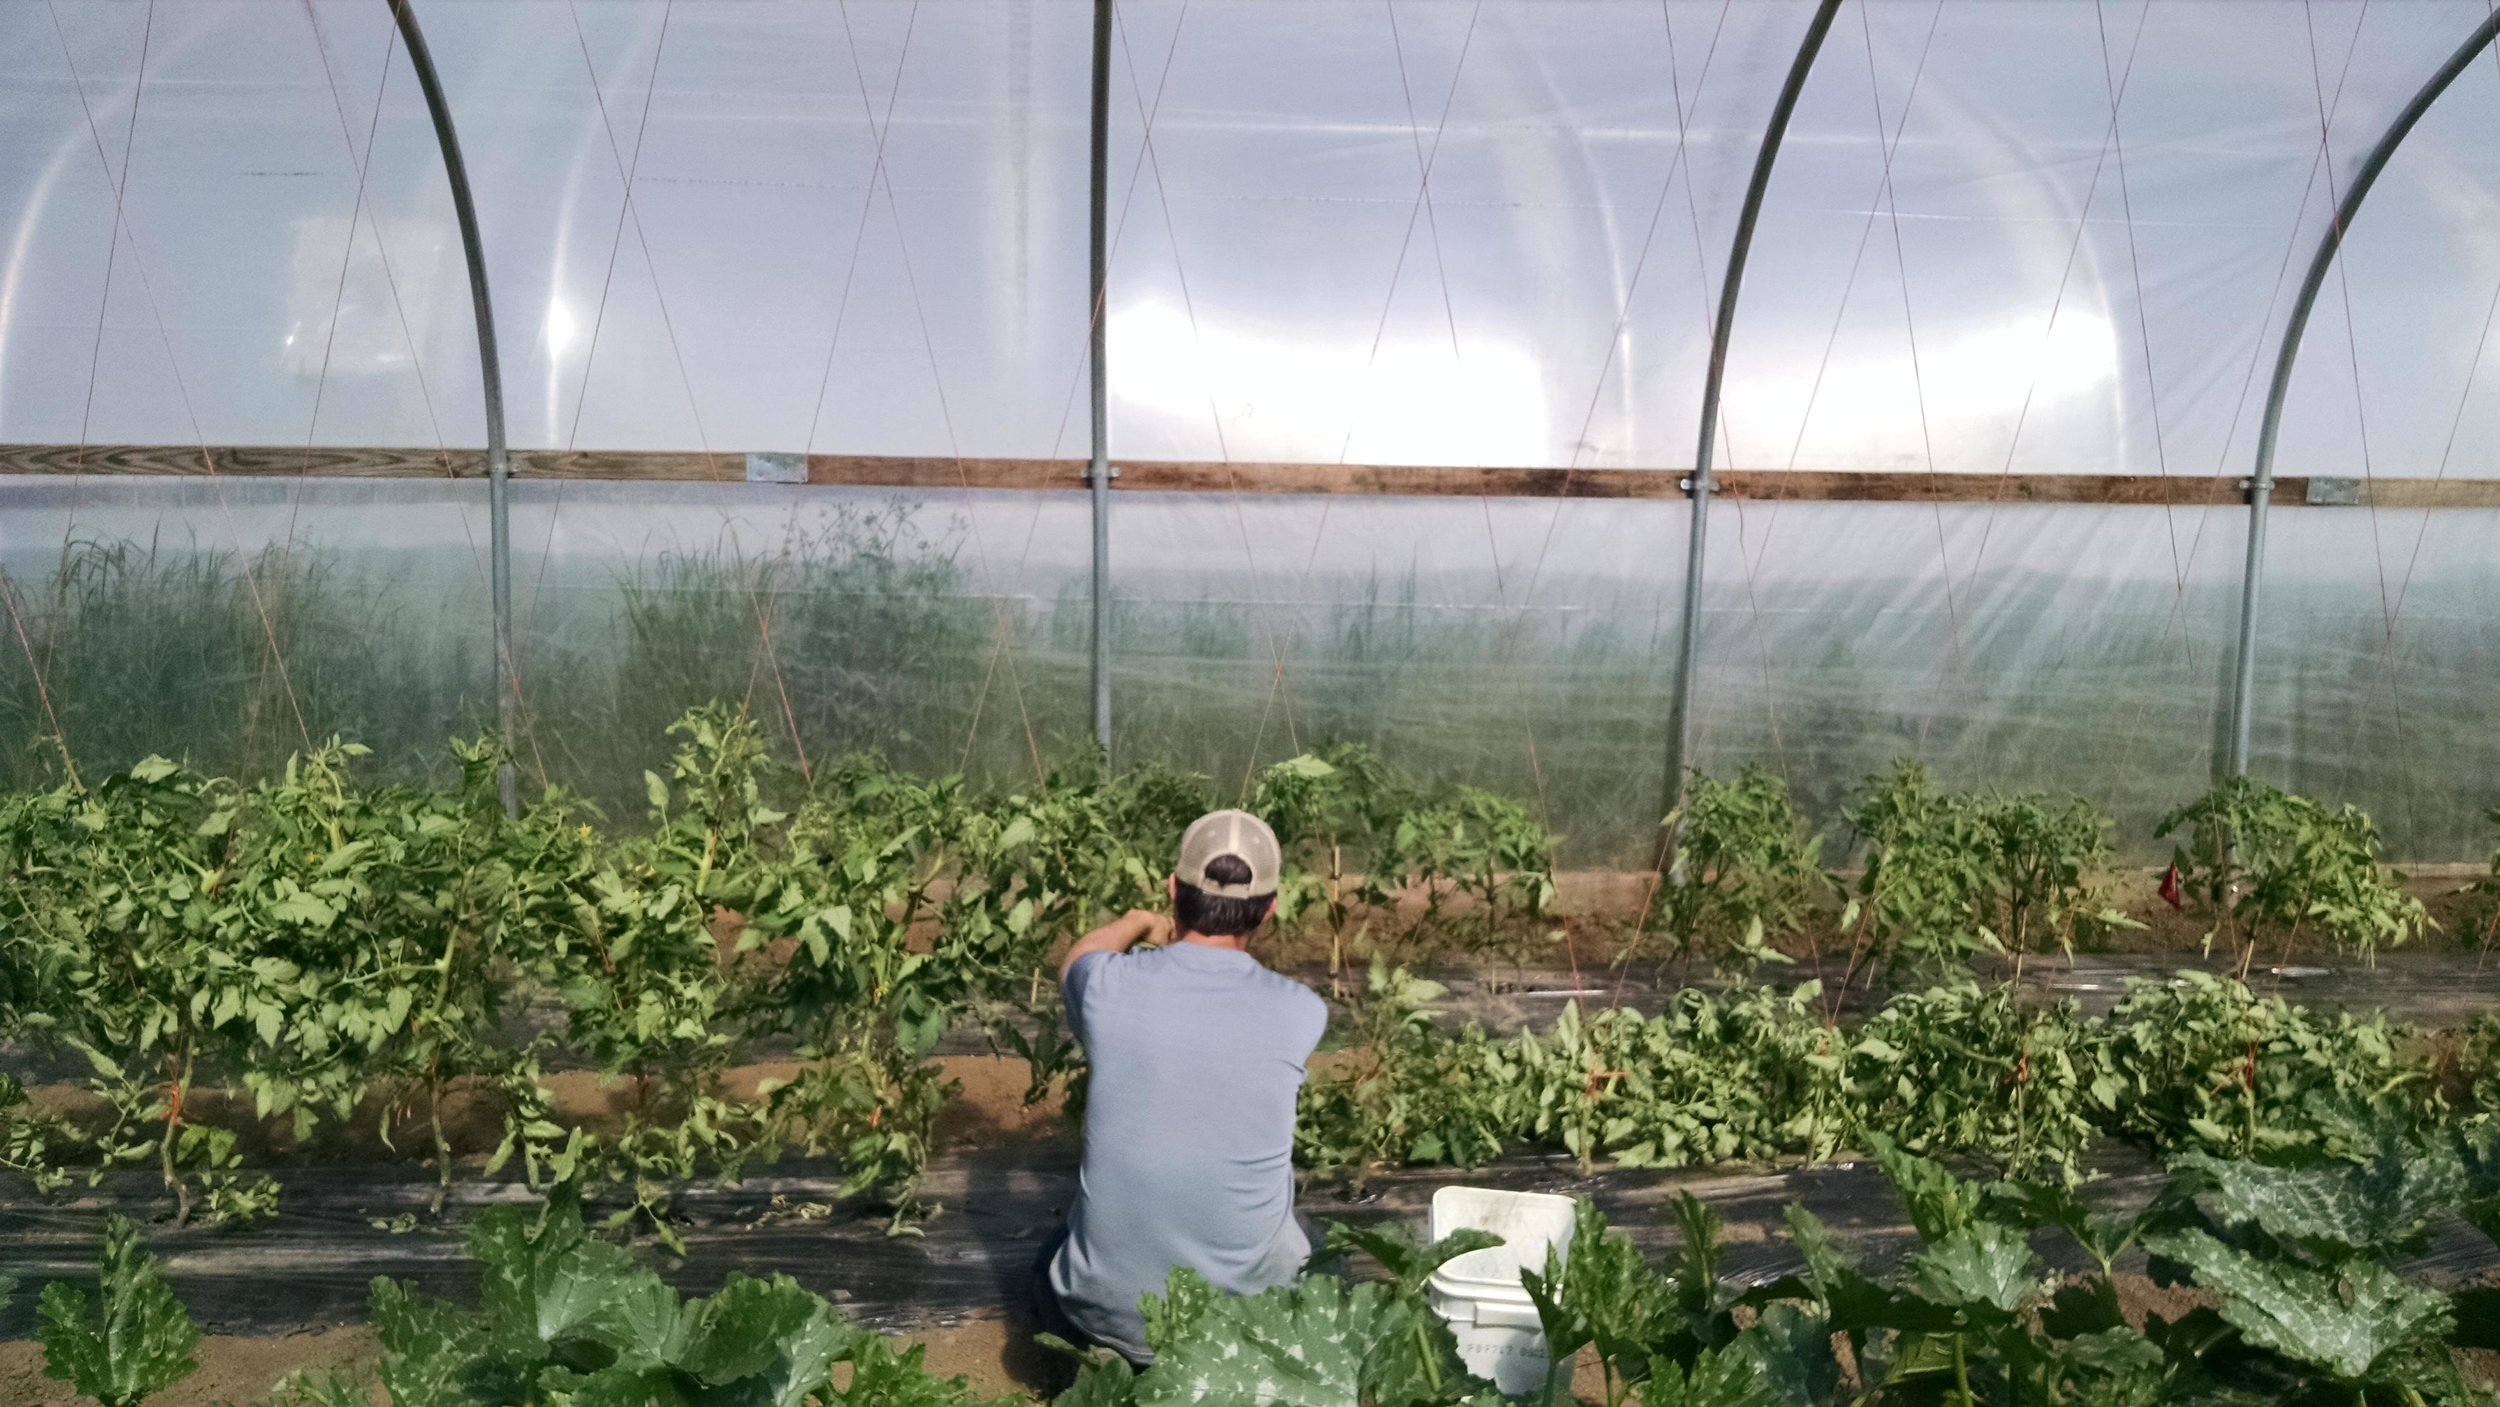 Phil clipping up tomato plants into the trellis braid